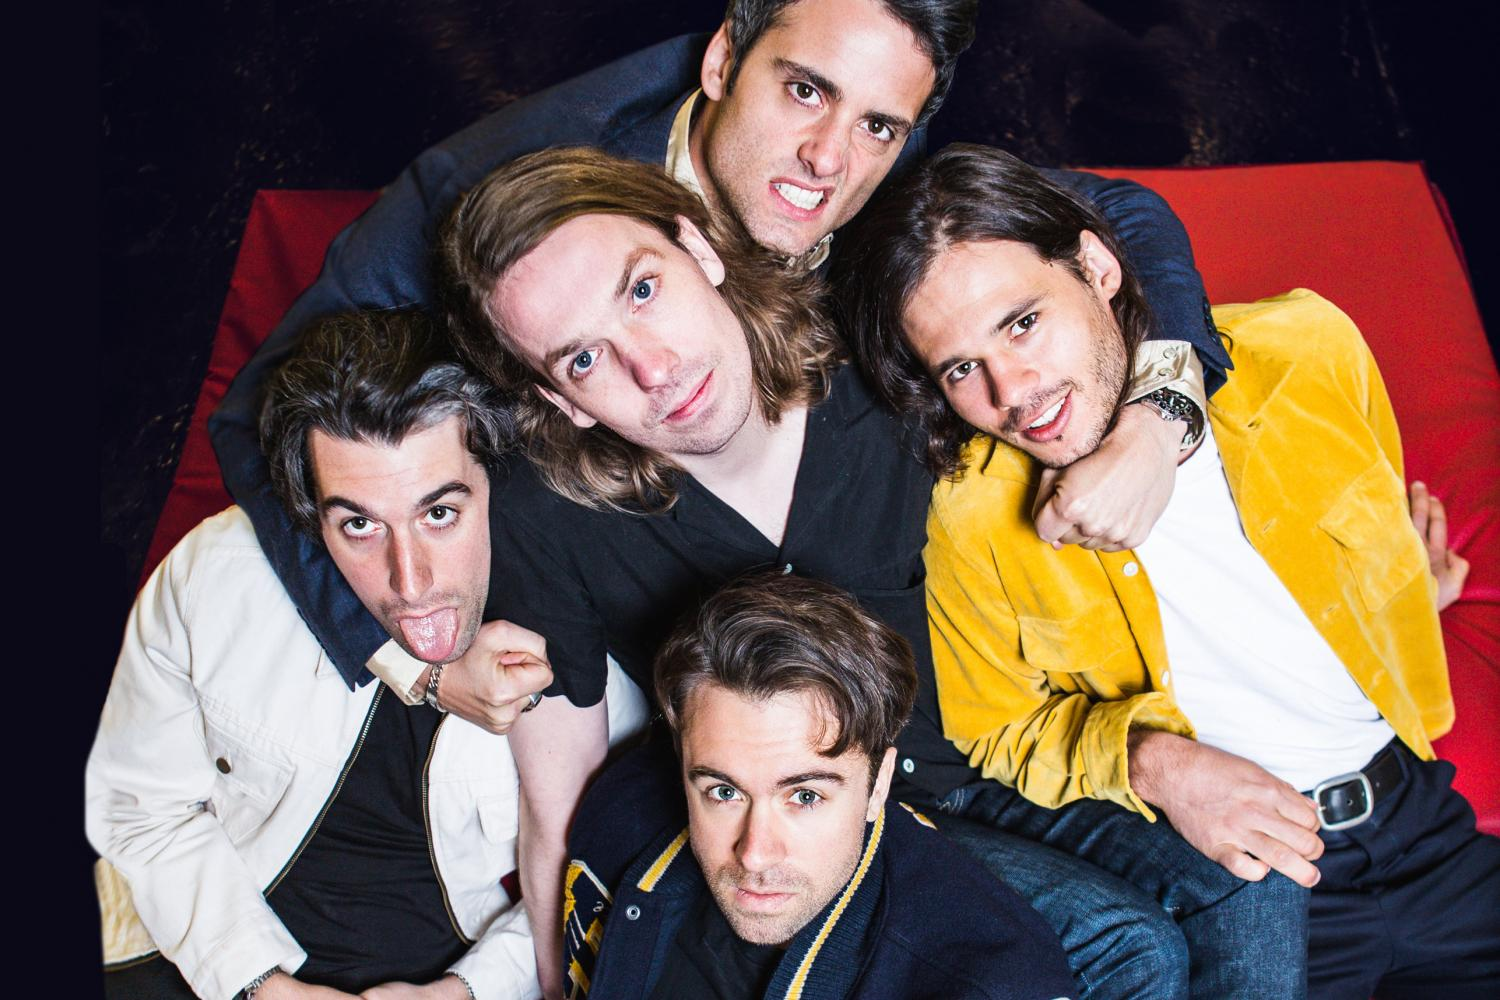 """All My Friends Are Falling In Love"": Escucha el nuevo single de The Vaccines"